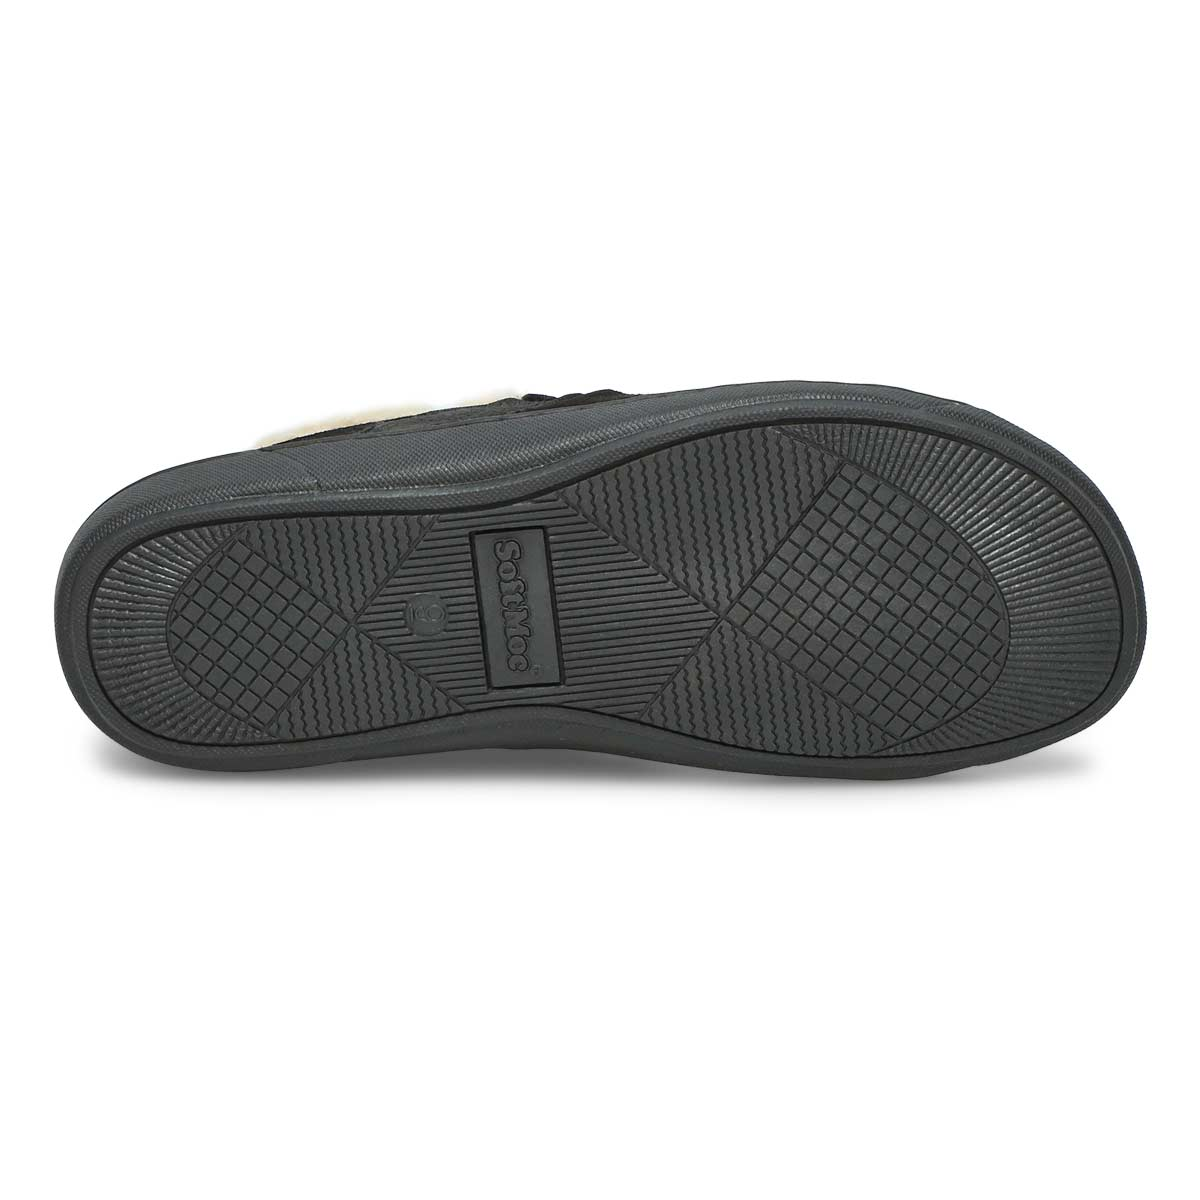 Mns Repete black memory foam slipper